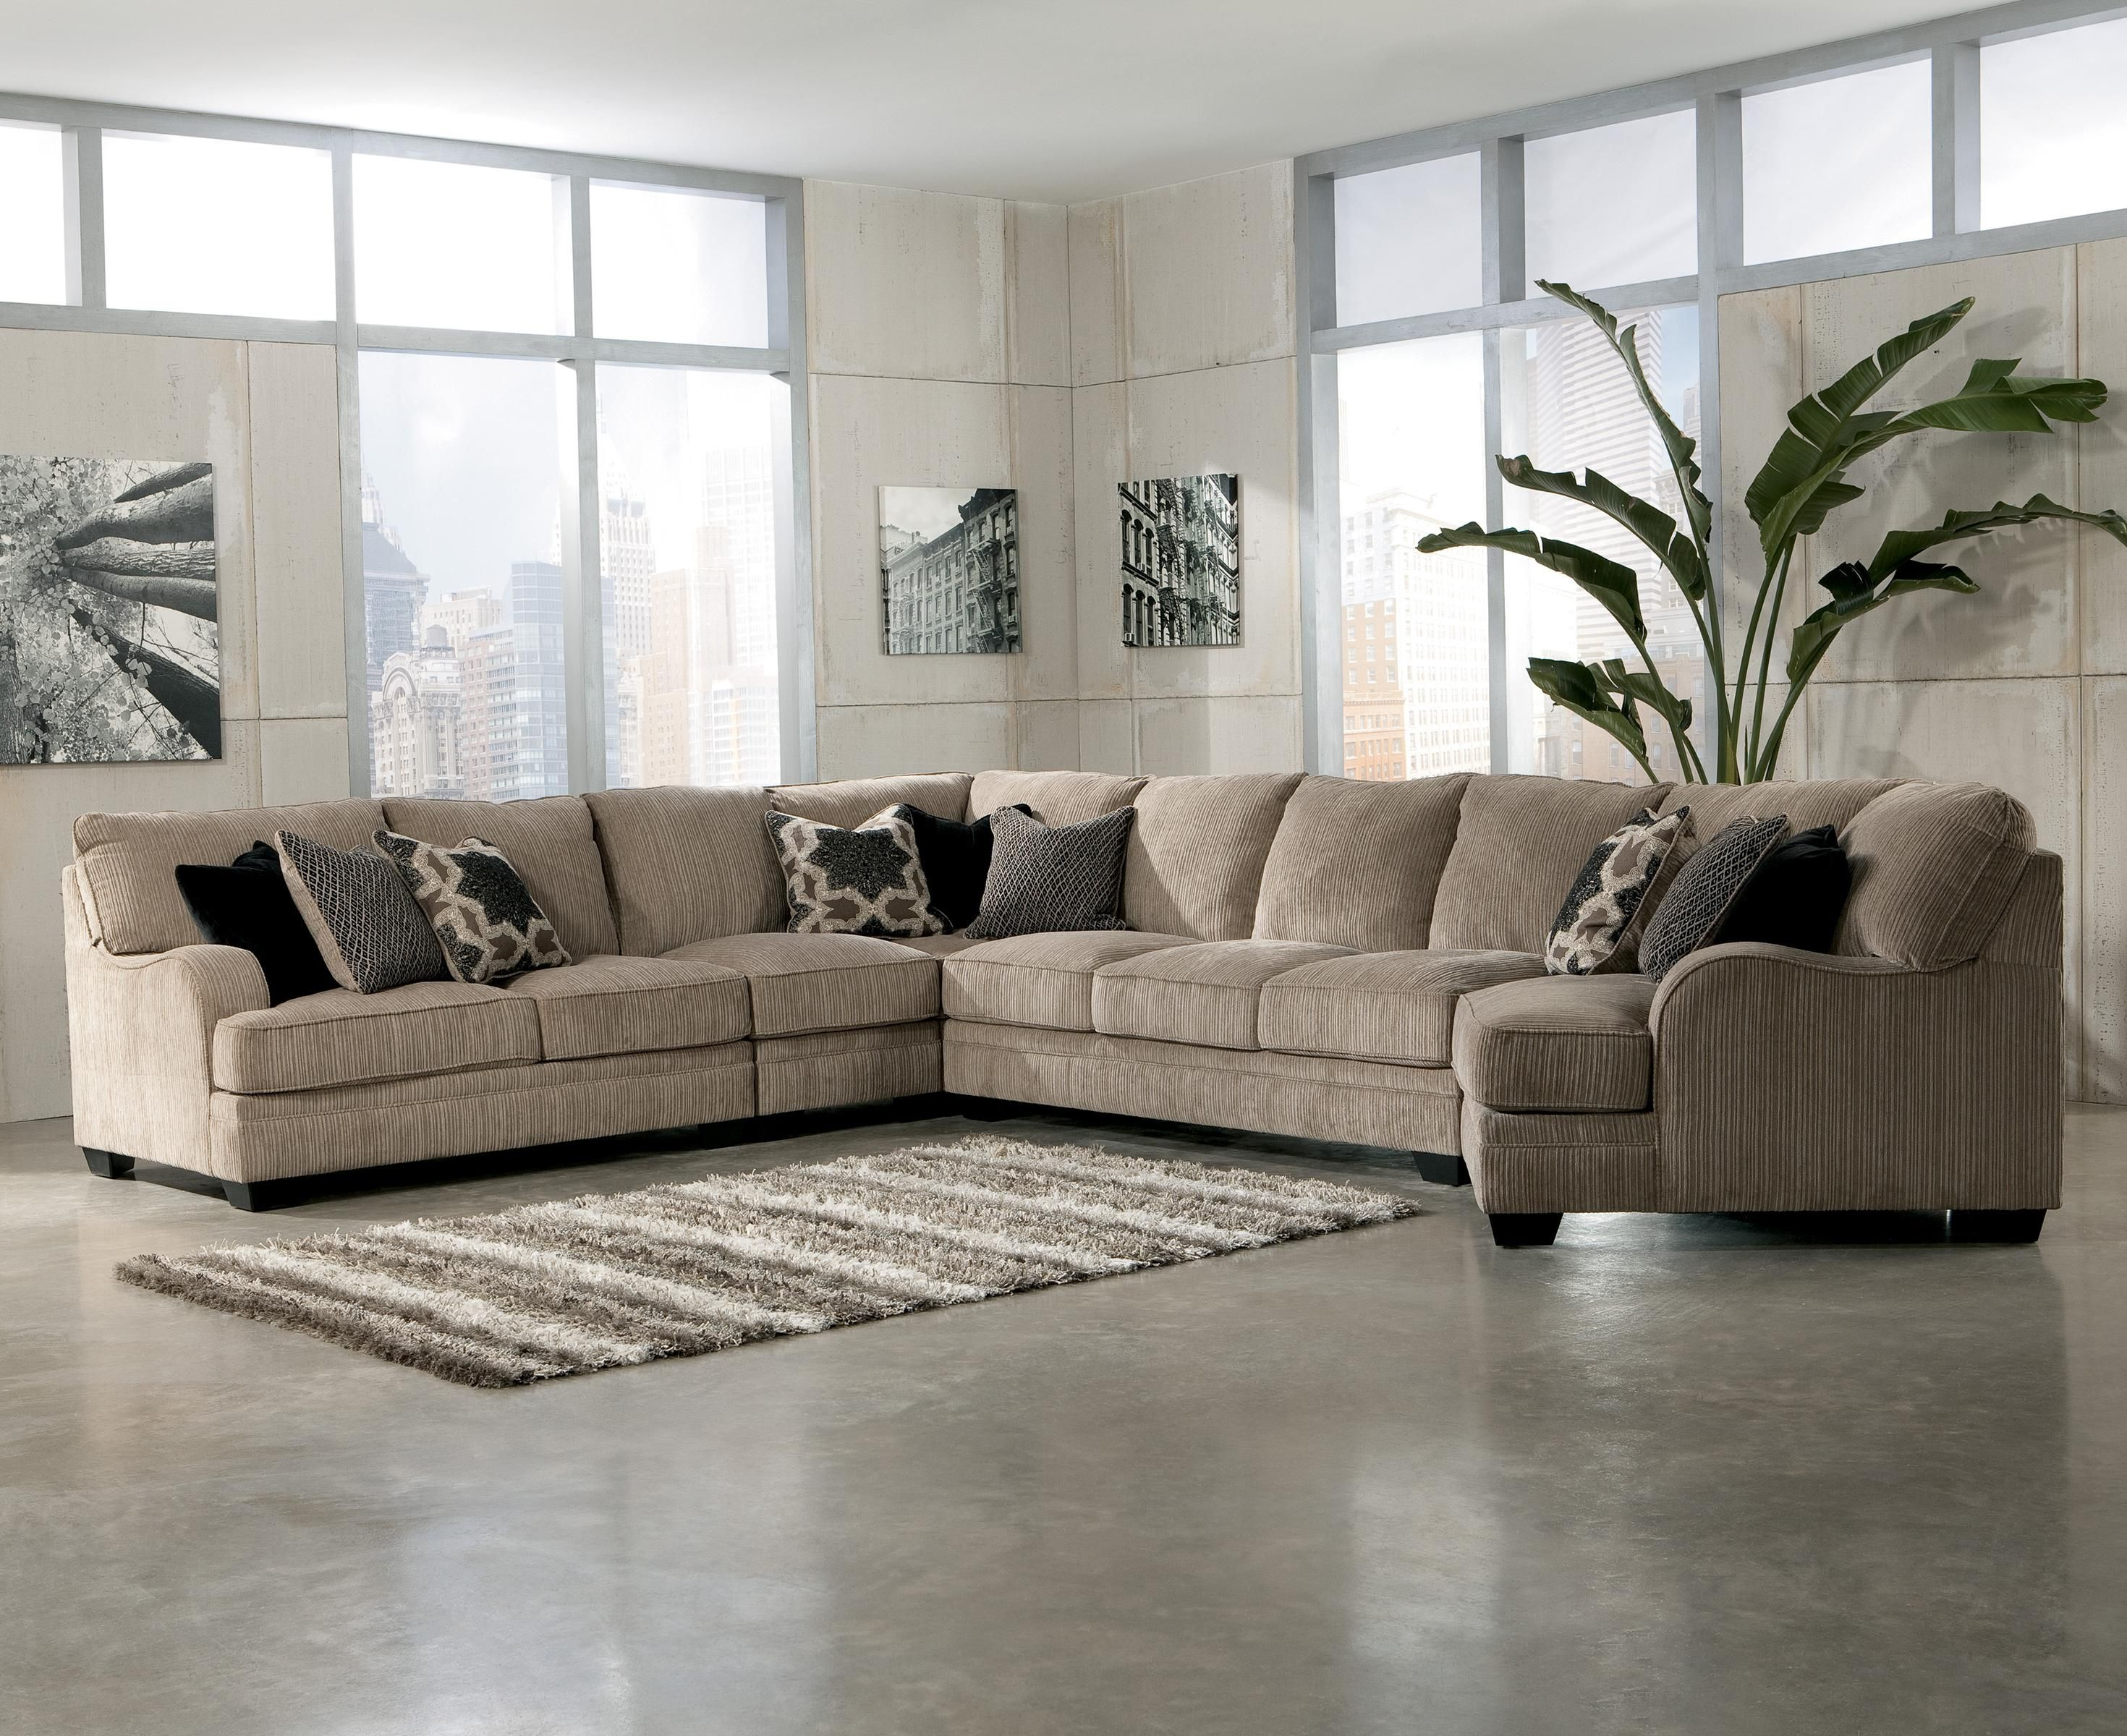 Attirant Comfortable Cuddler Sofa For Elegant Living Room Sofas Design: Ethan Allen  Sectional Sofa | Circular